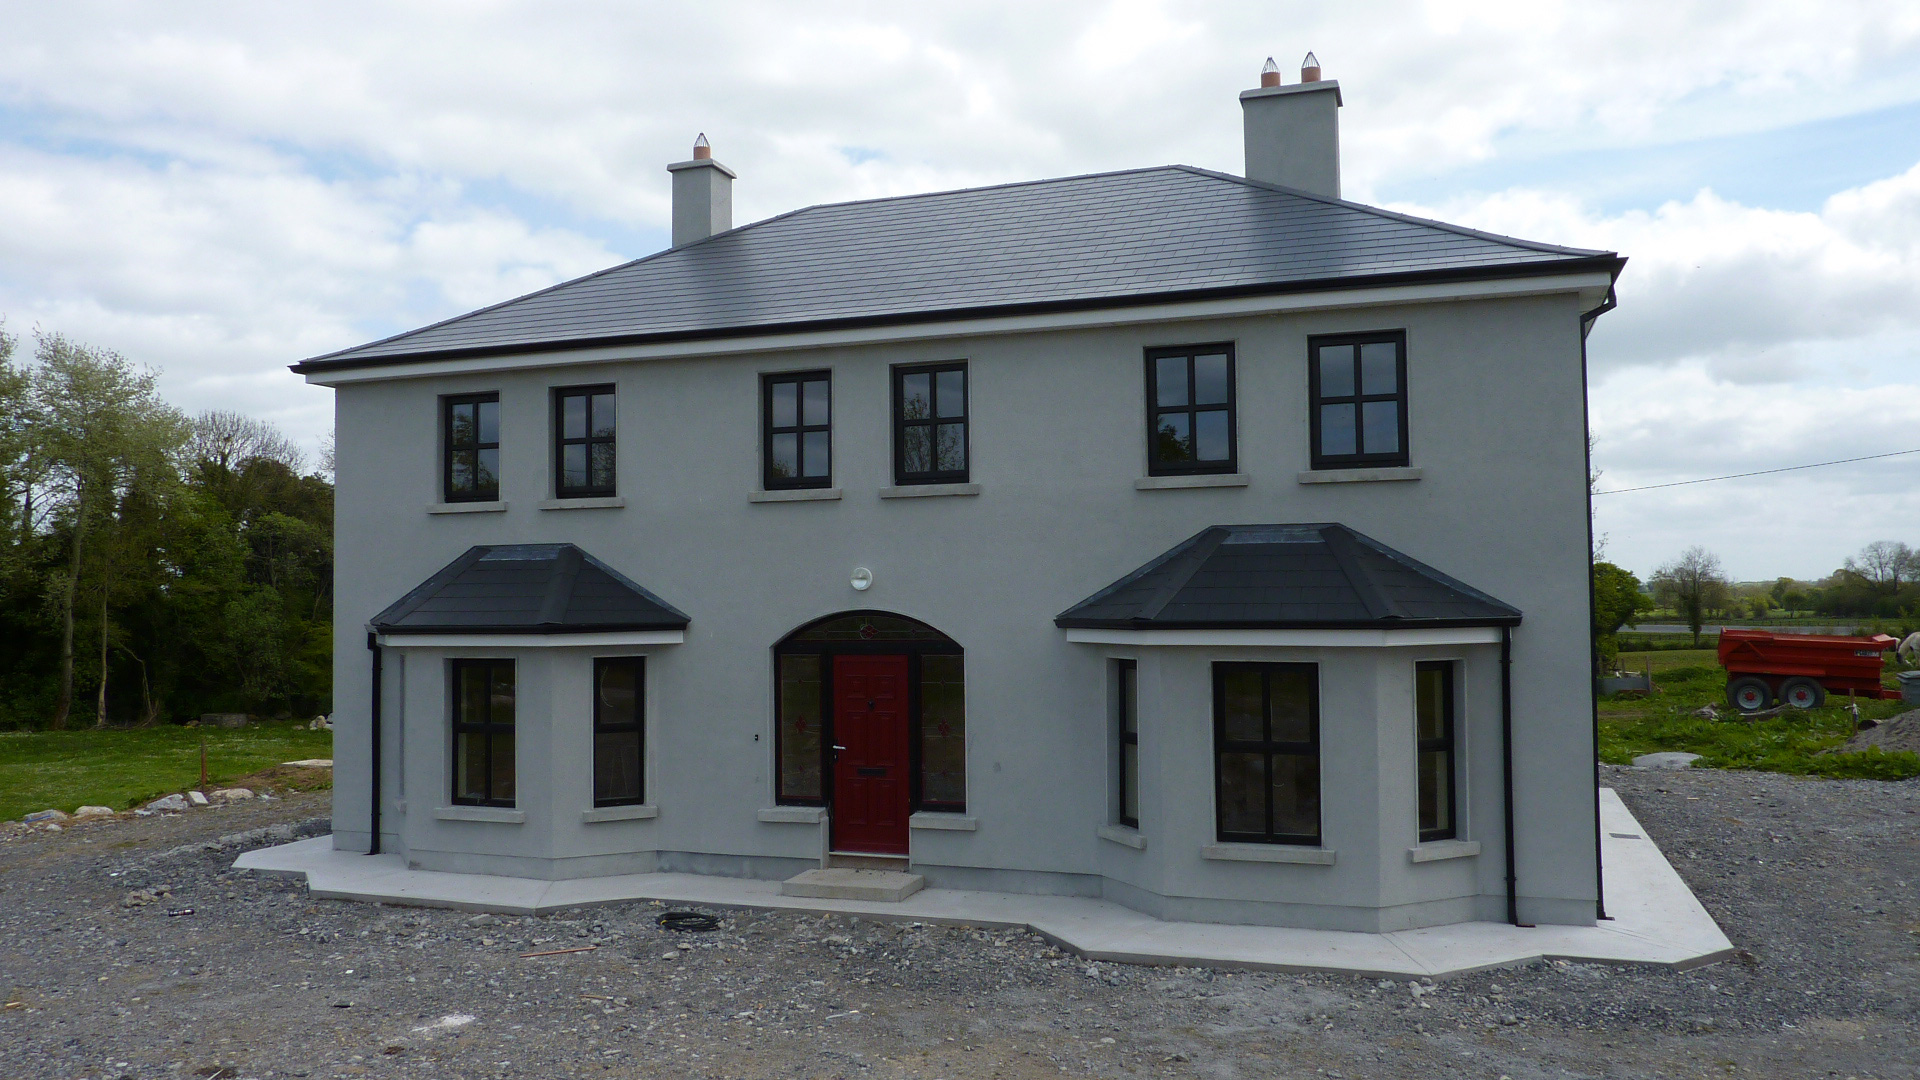 Traditional 2 story house plans ireland 2 story house plans ireland